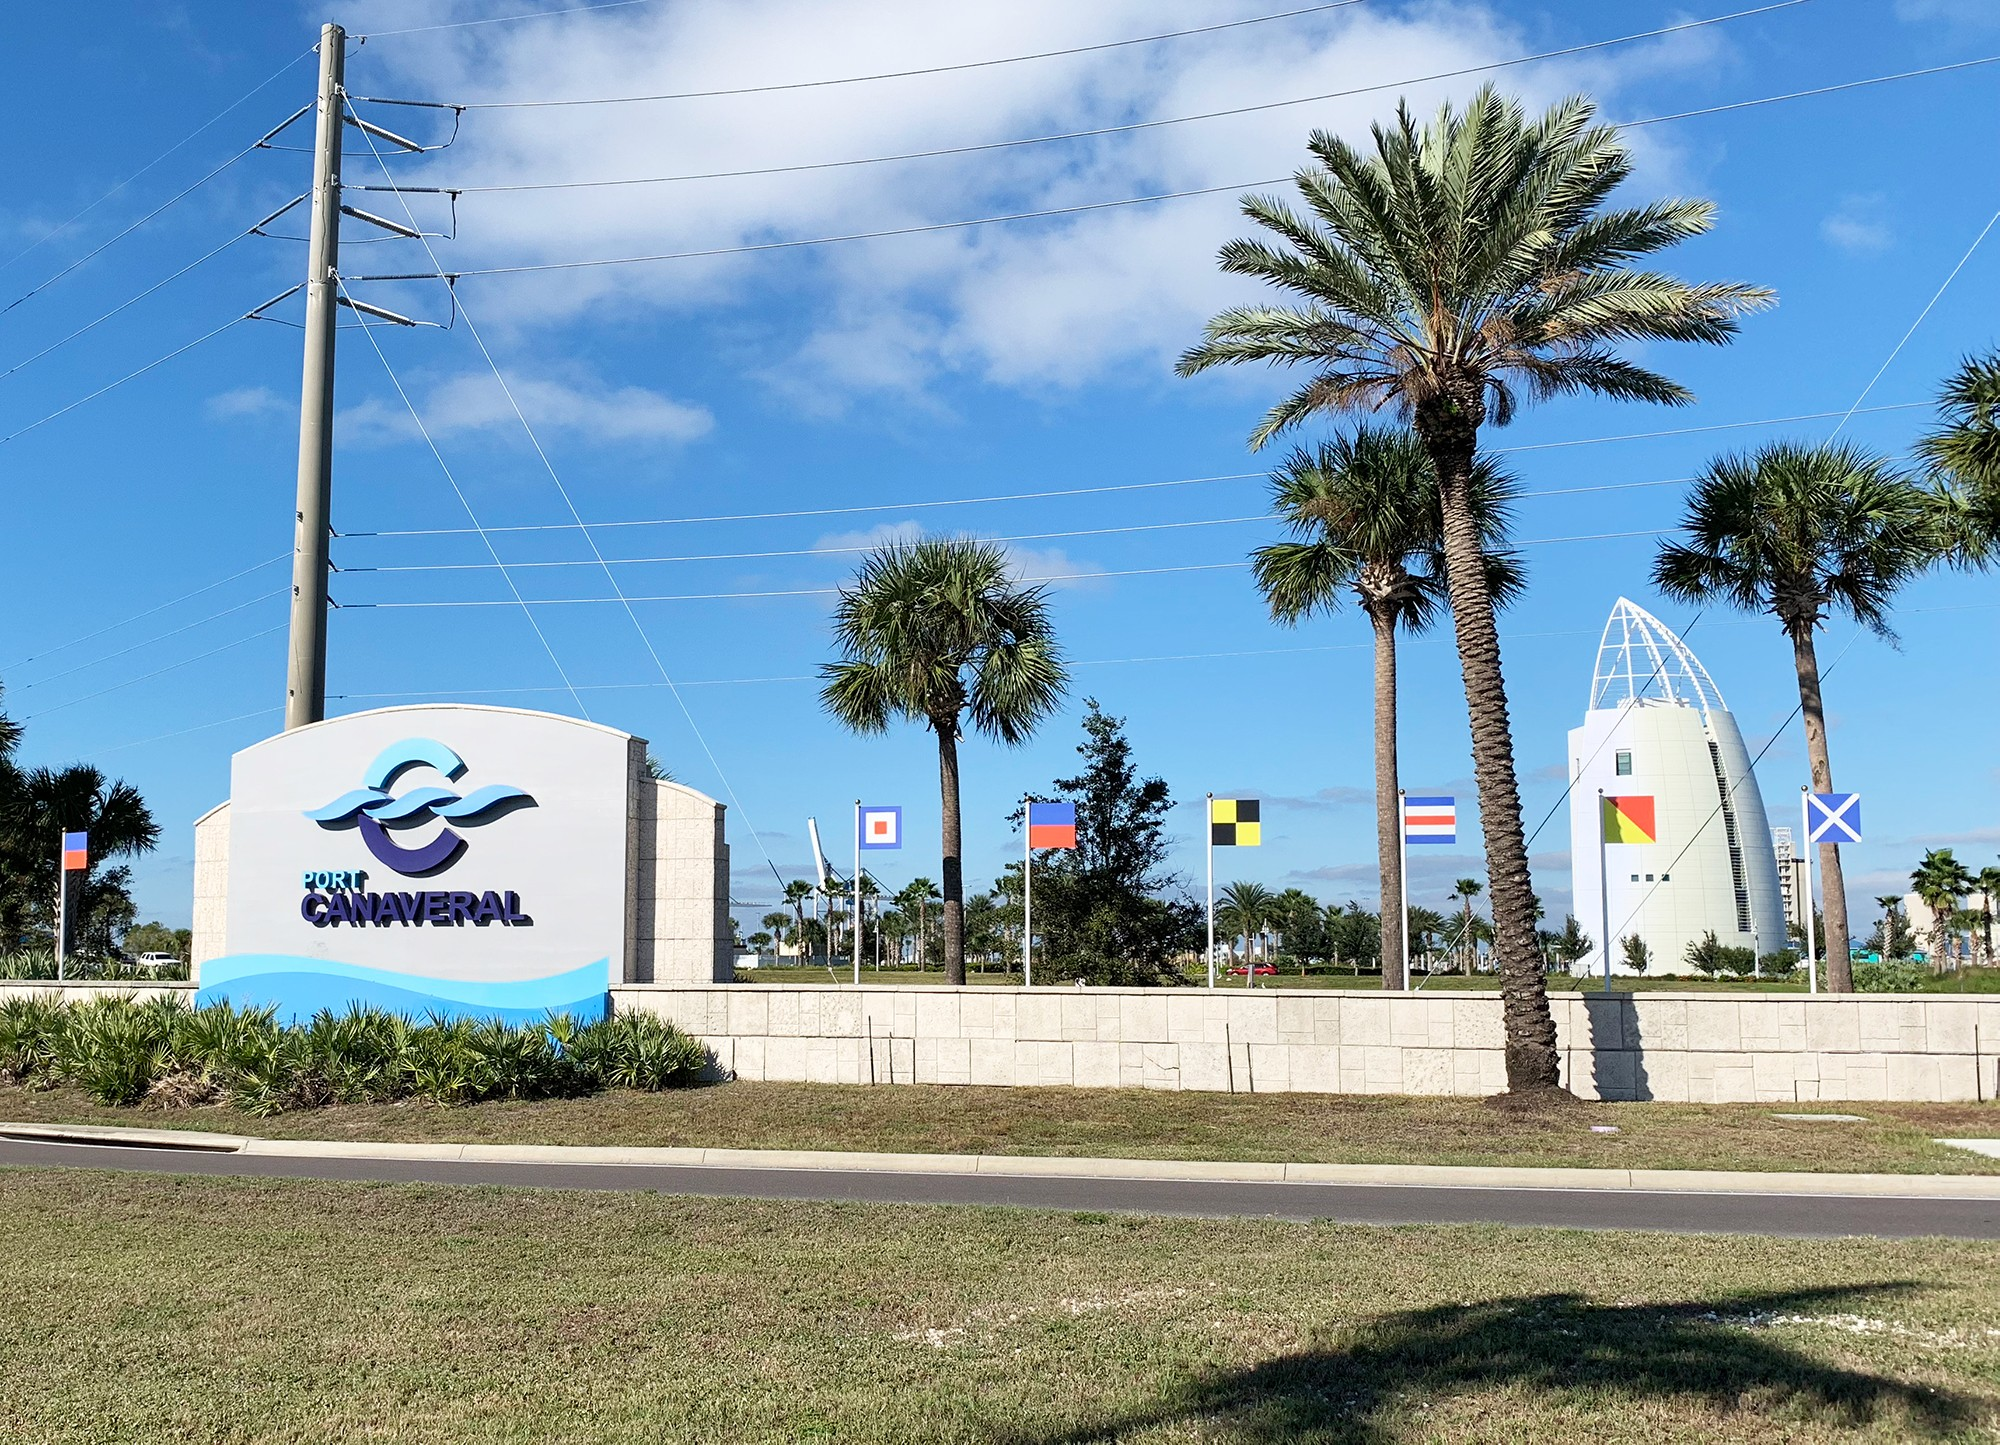 Best Way from Orlando Airport to Cruise in Port Canaveral